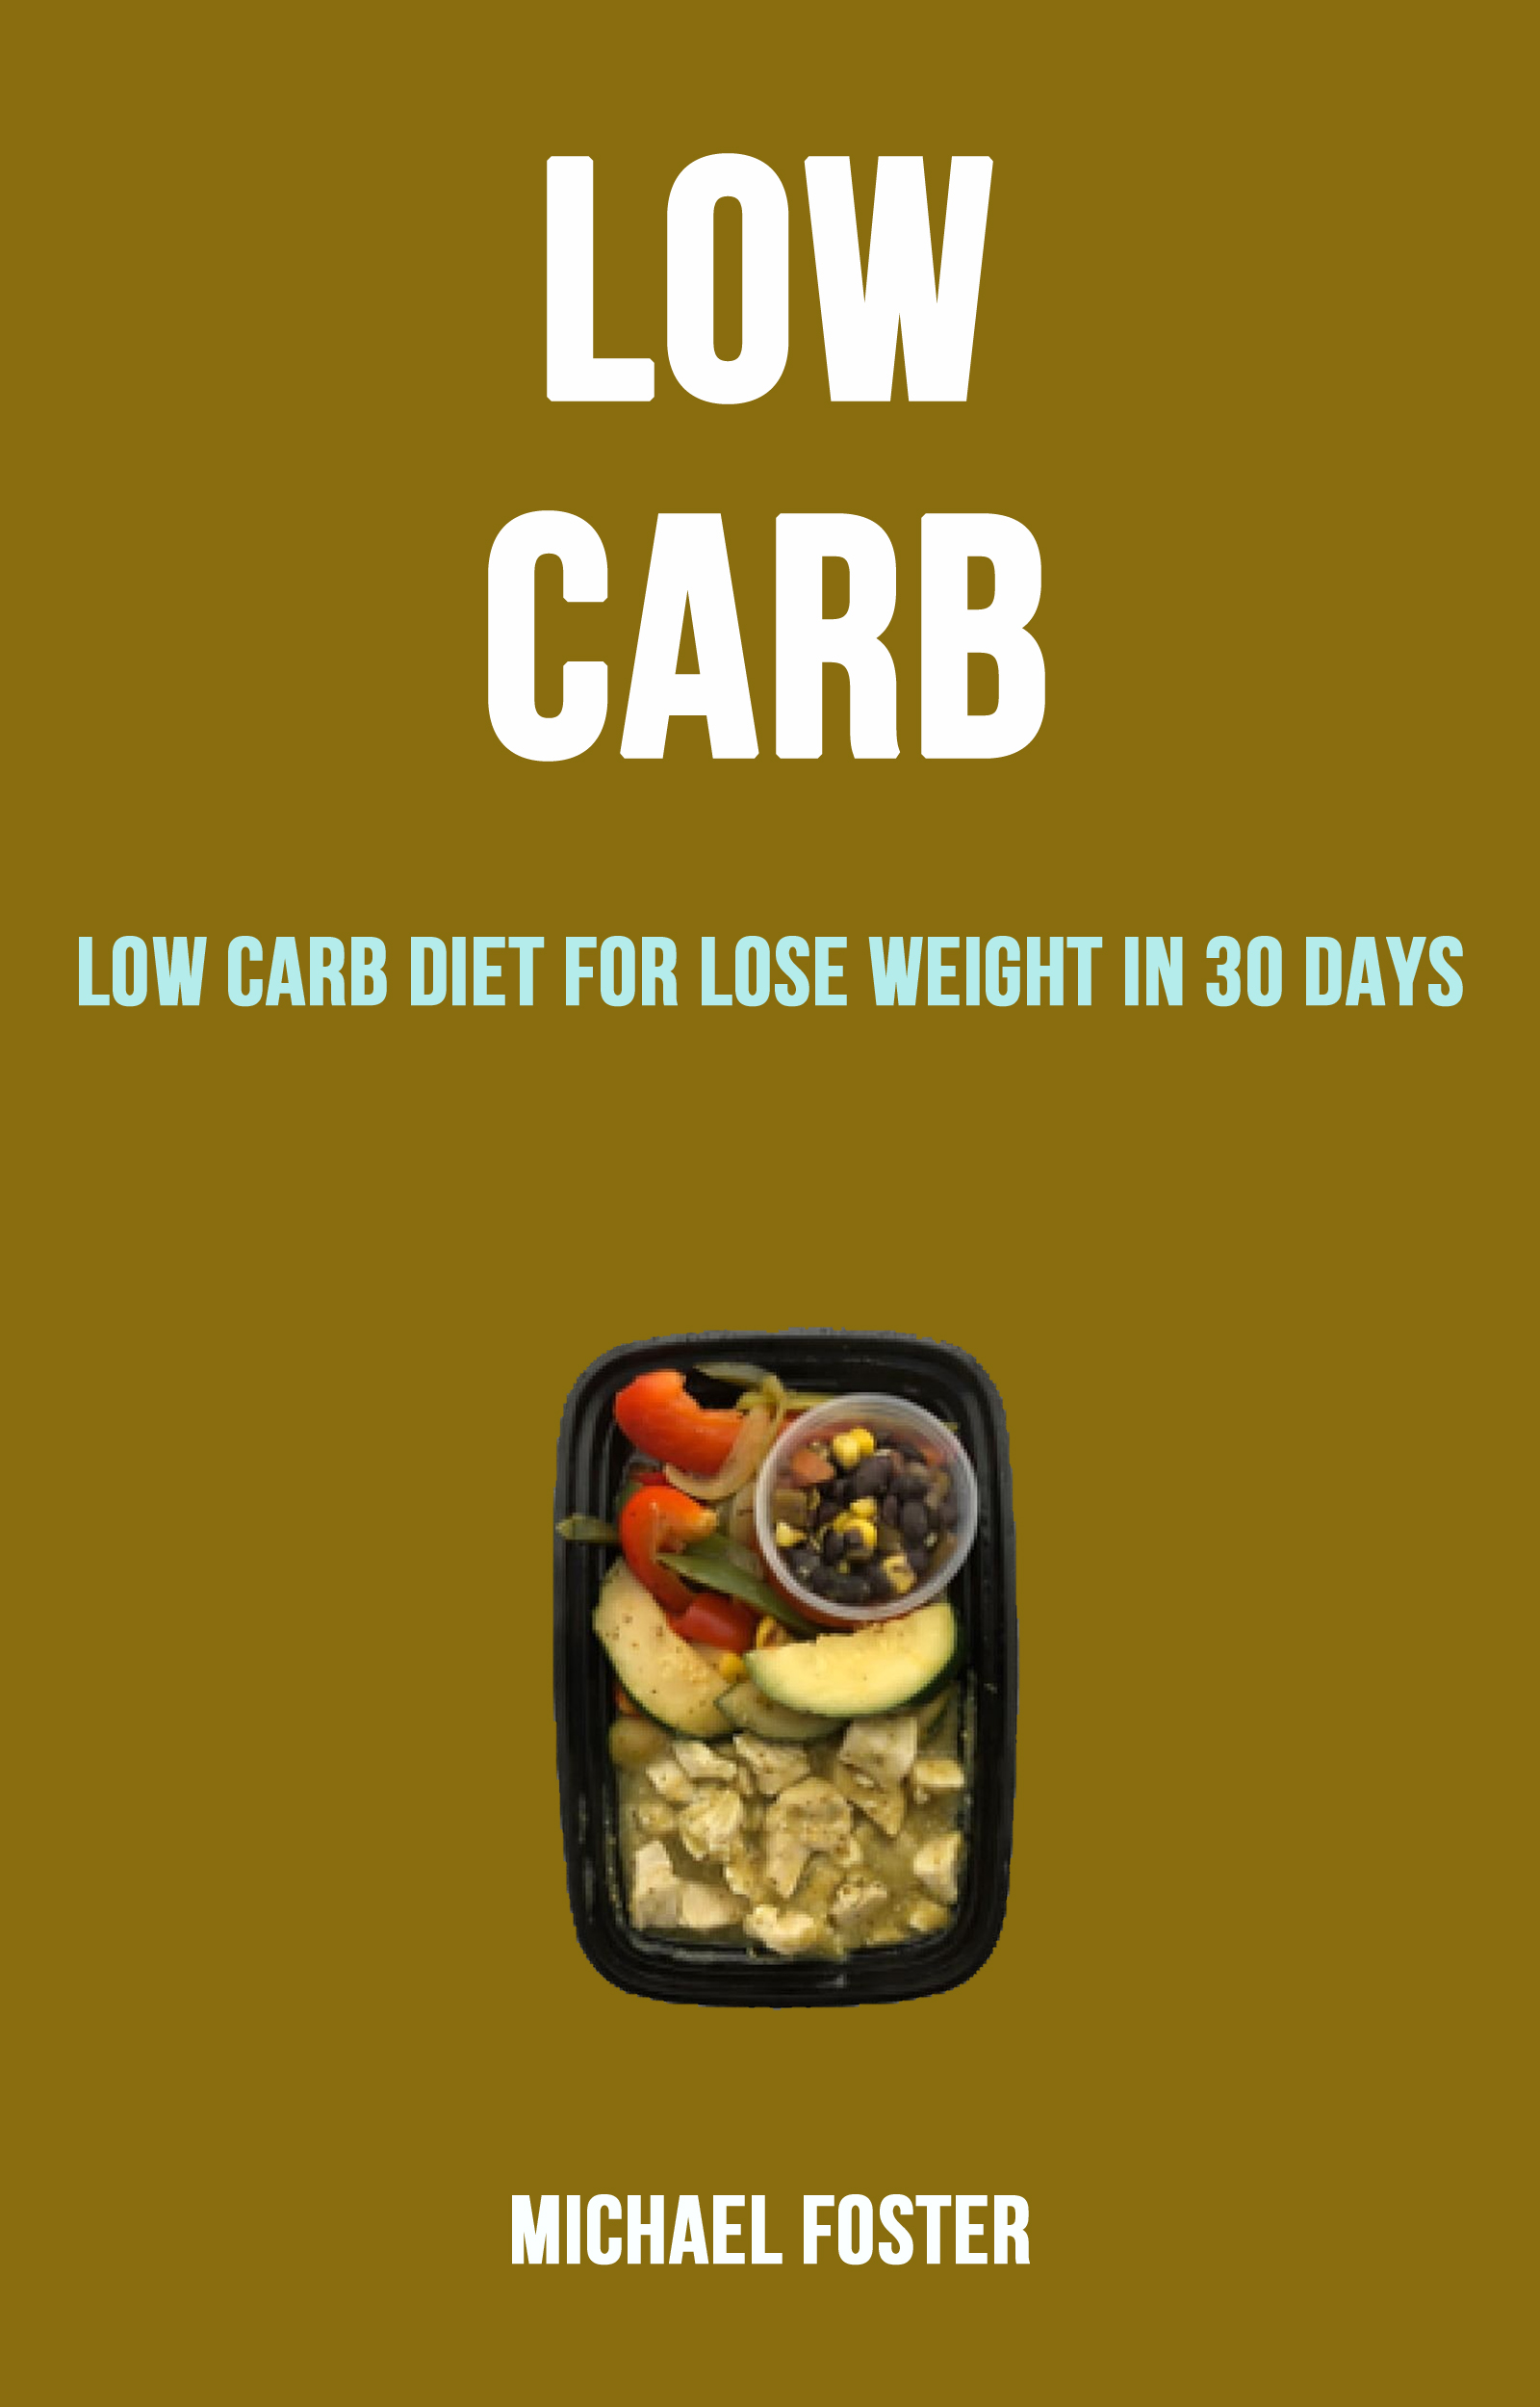 Low carb: low carb diet for lose weight in 30 days